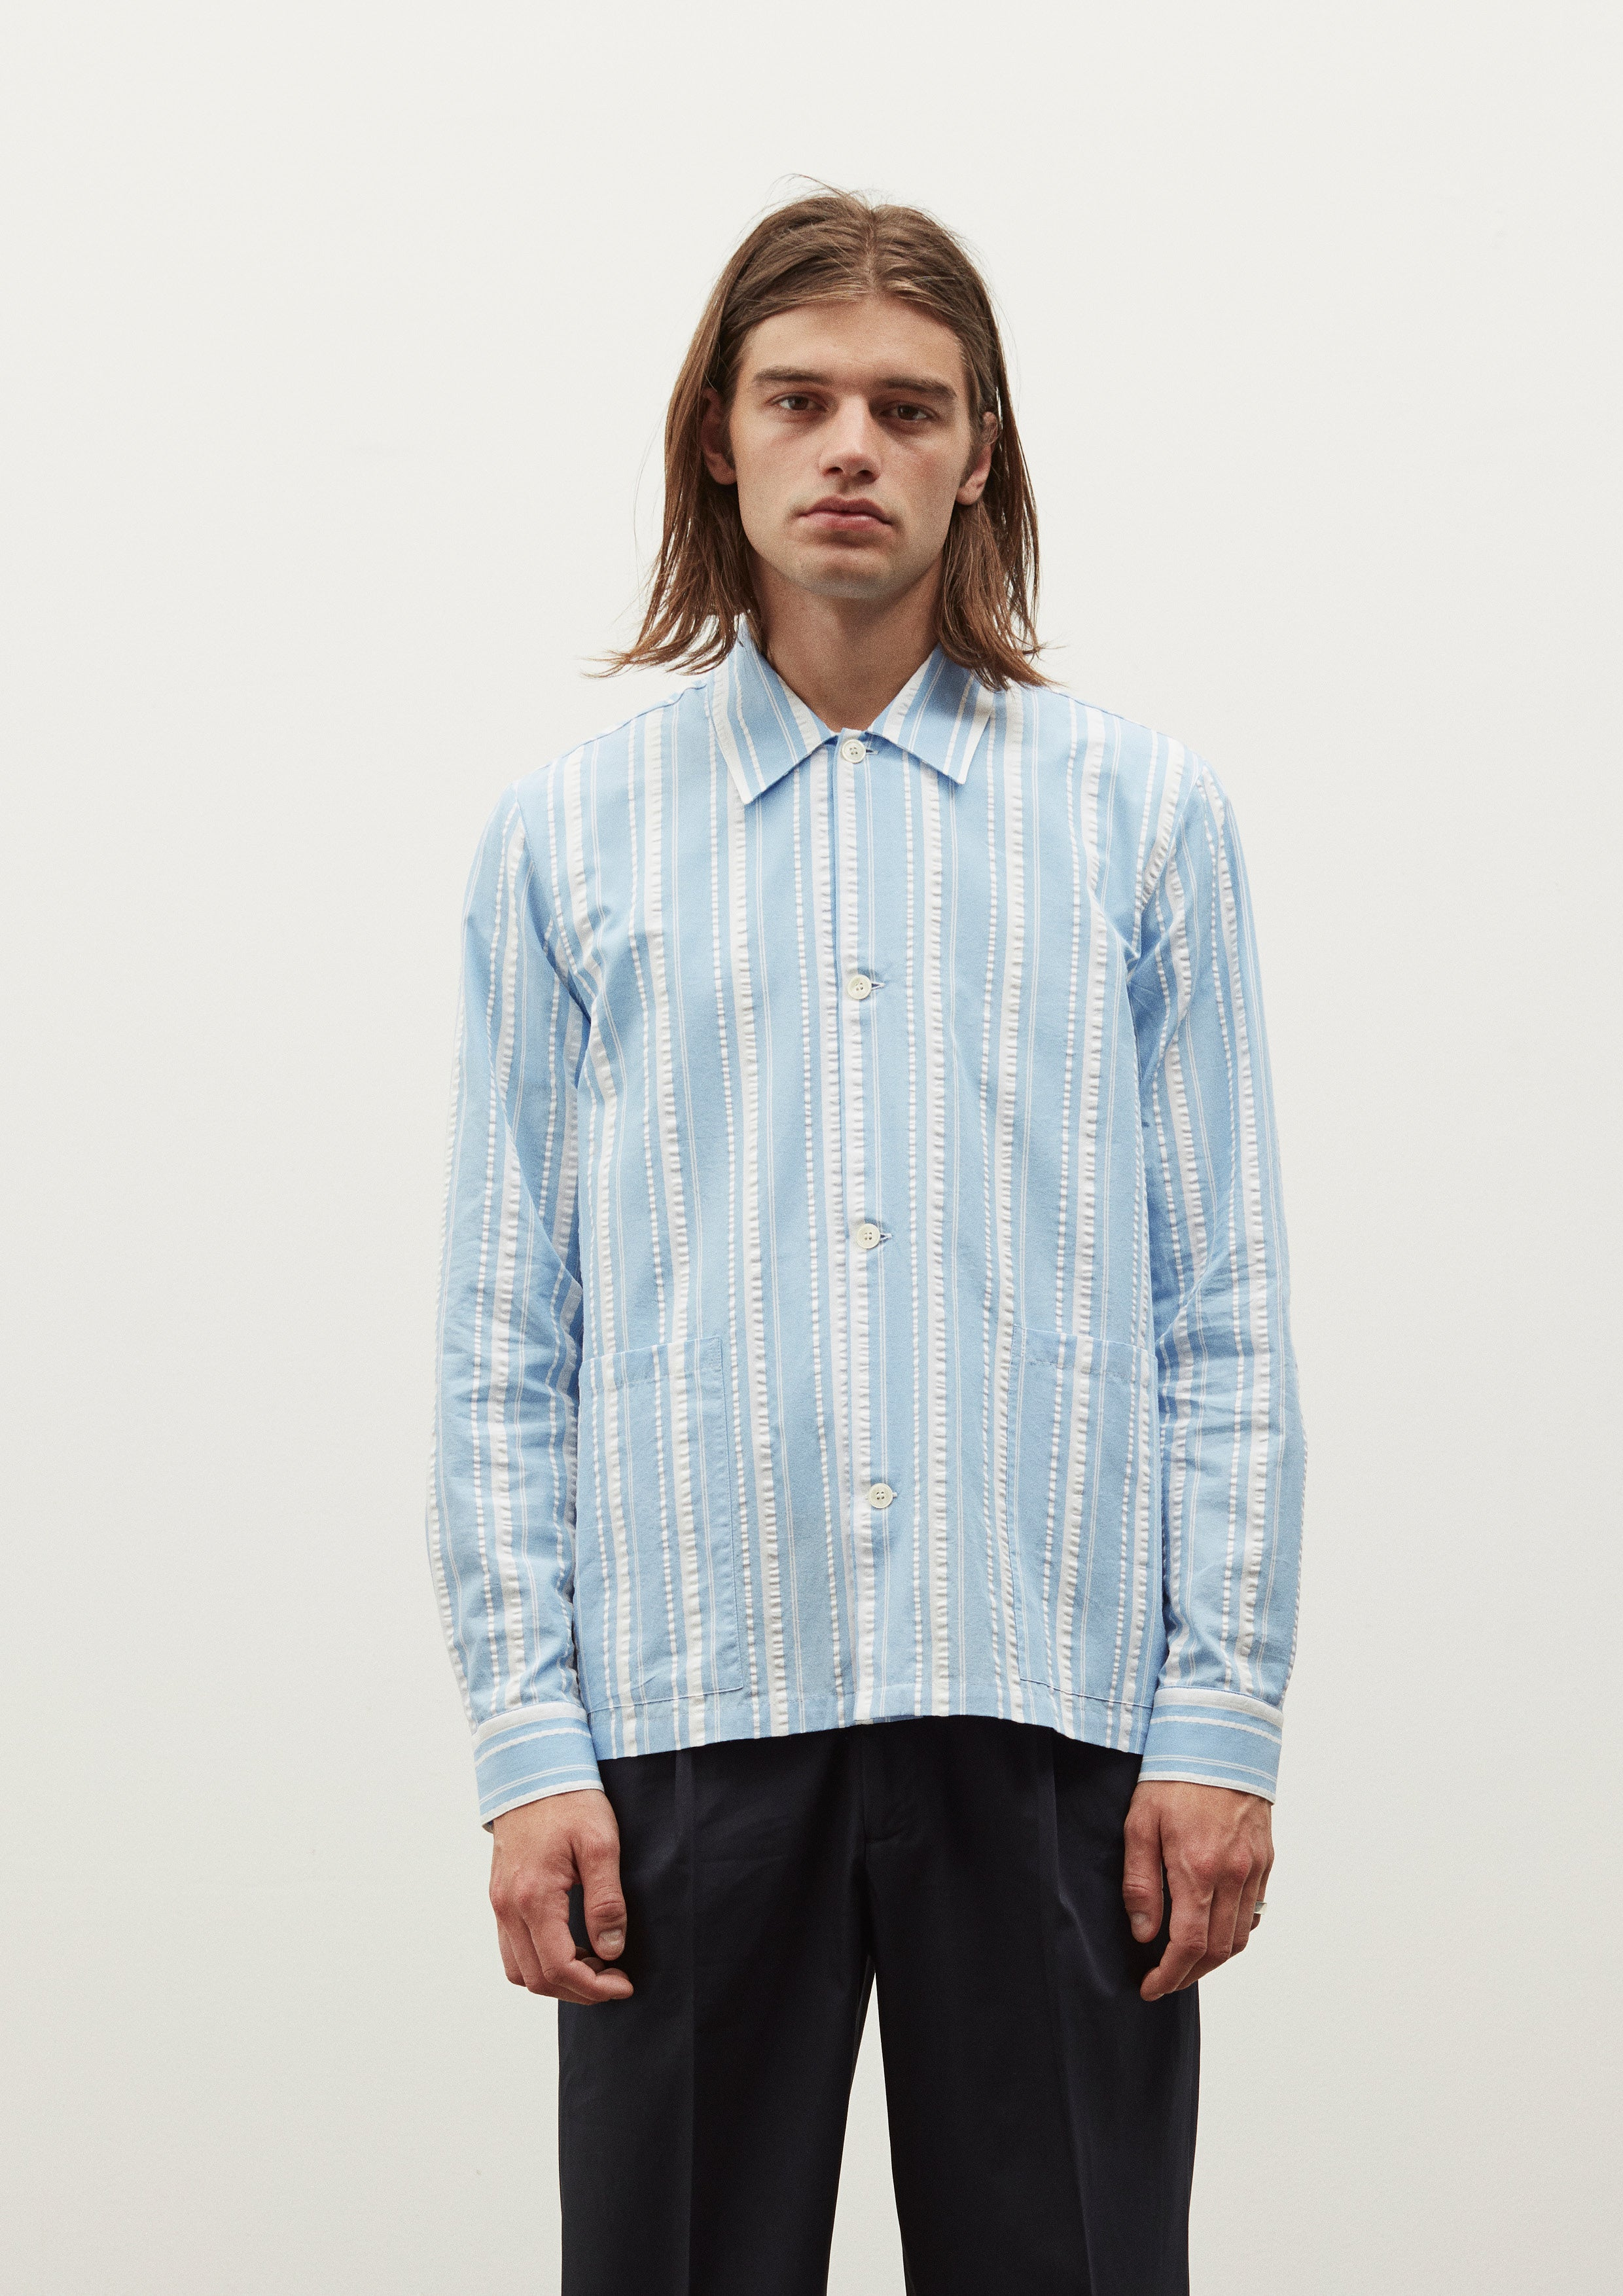 LAB SHIRT - BLUE